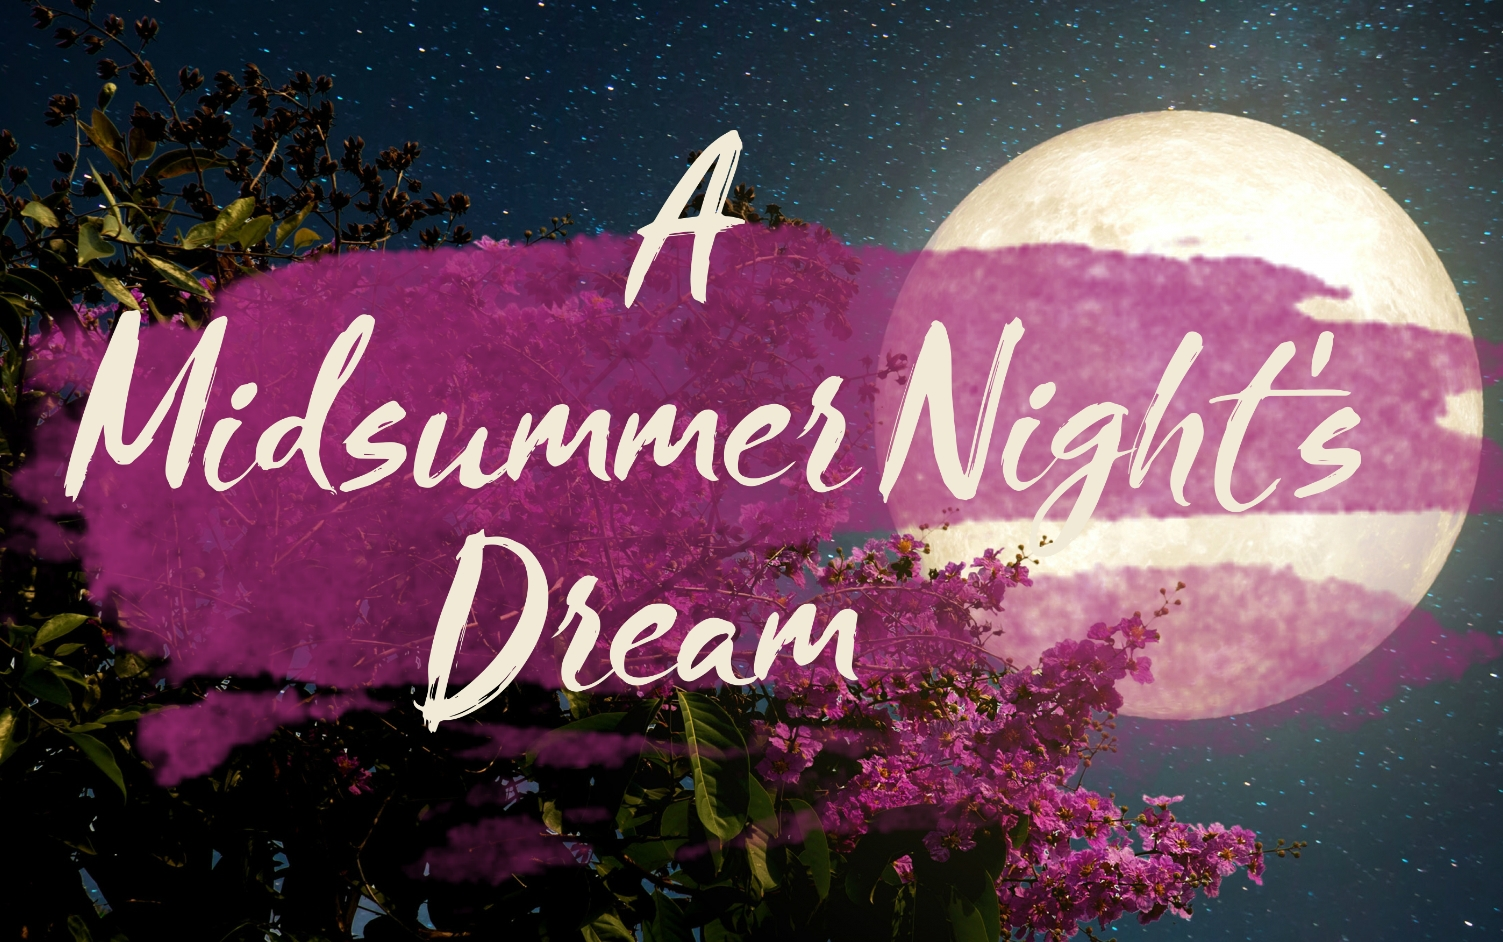 Alliance Theatre - This fall, Anna returned to the Alliance Theatre to understudy A Midsummer Night's Dream. This production took place in the beautiful Atlanta Botanical Gardens and stole the hearts of audience members with its playful charm.